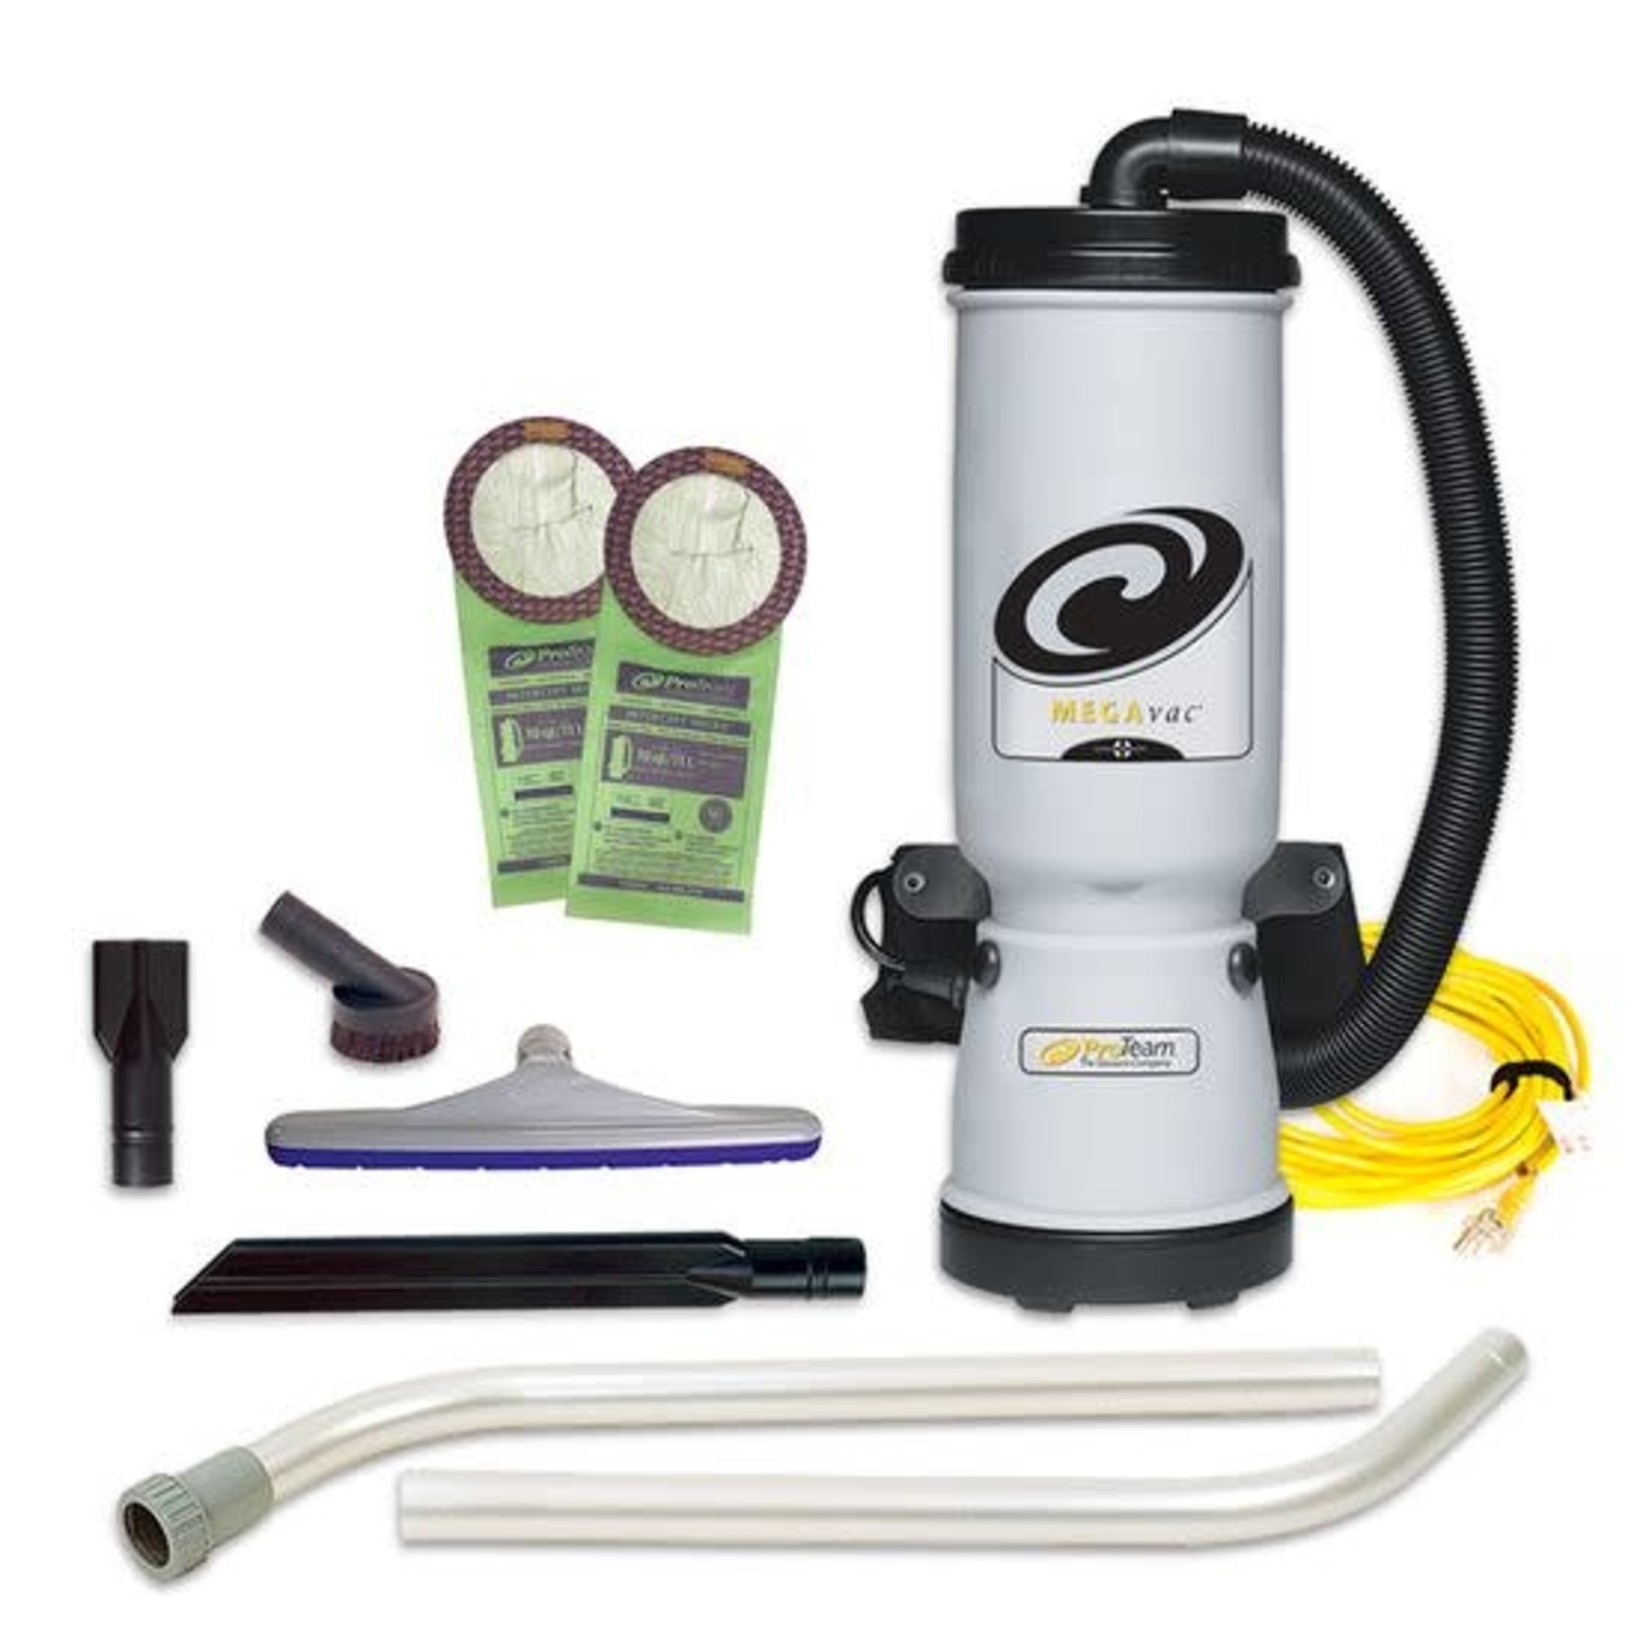 ProTeam Commercial Vacuums MegaVac 10 qt. Backpack Vacuum w/ Blower Tool and Xover Multi-Surface Two-Piece Wand Tool Kit